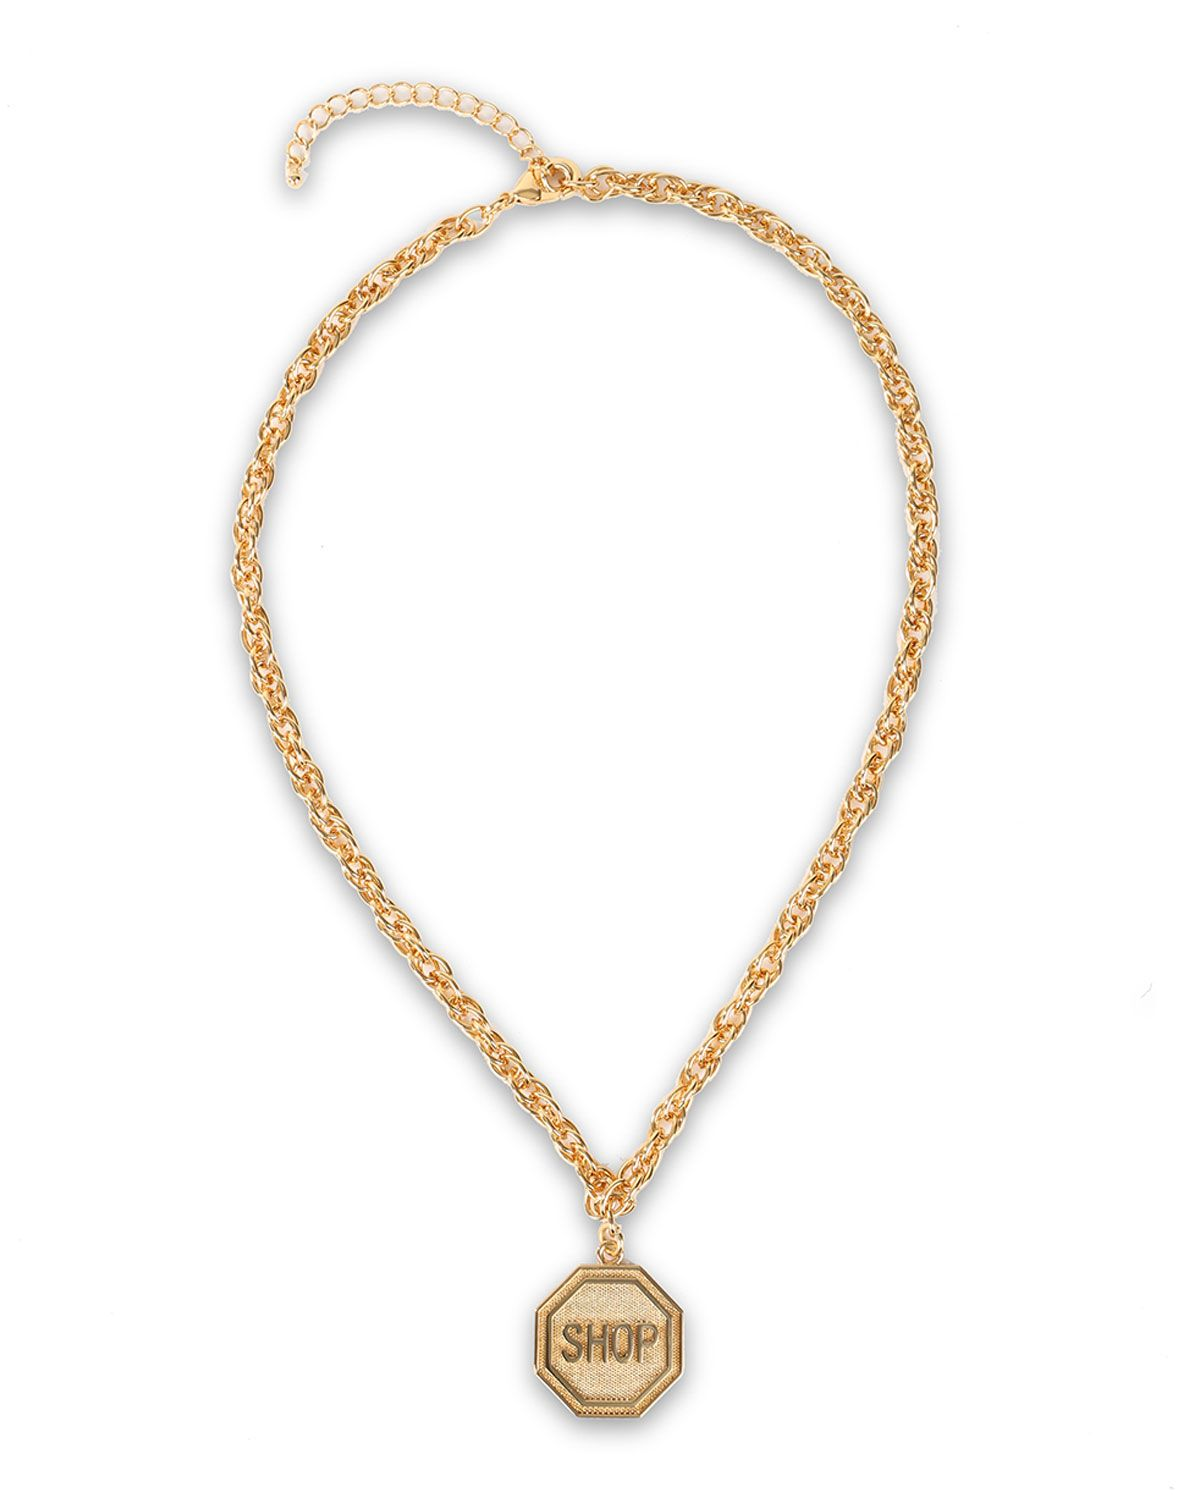 """Shop"" Sign Golden Pendant Necklace, Women's, GOLD - Moschino"